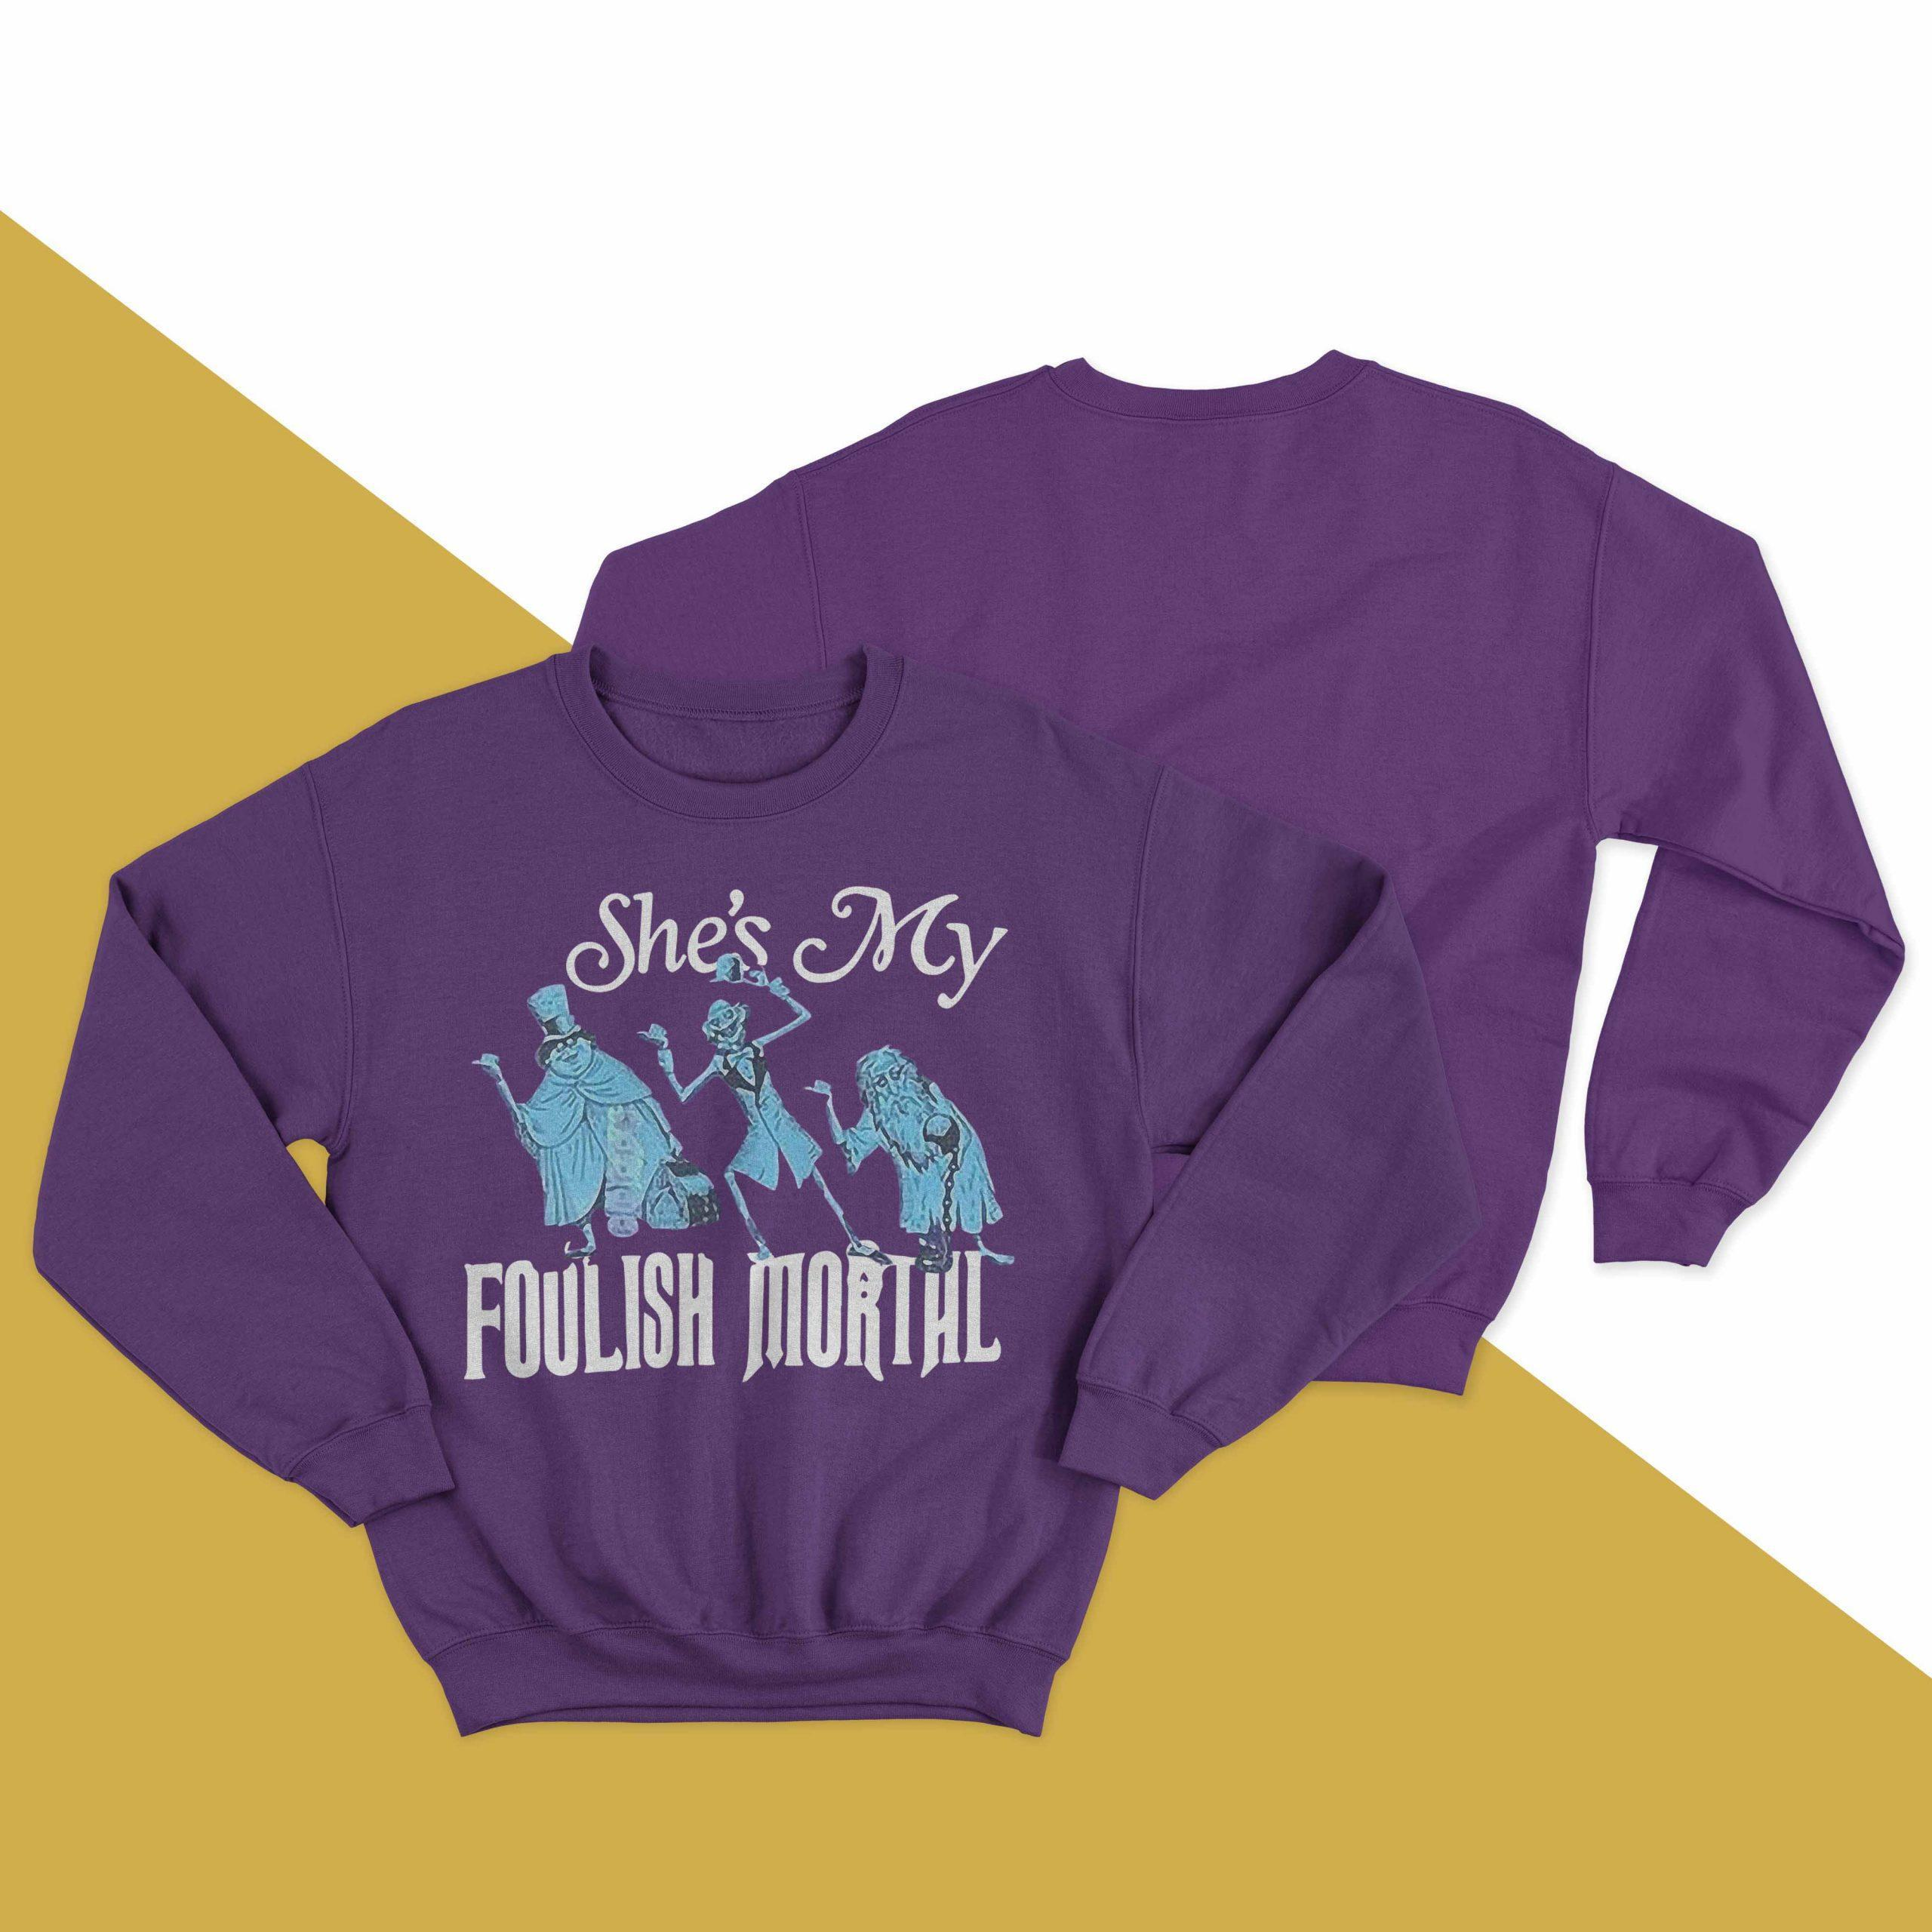 She's My Foolish Mortal Longsleeve